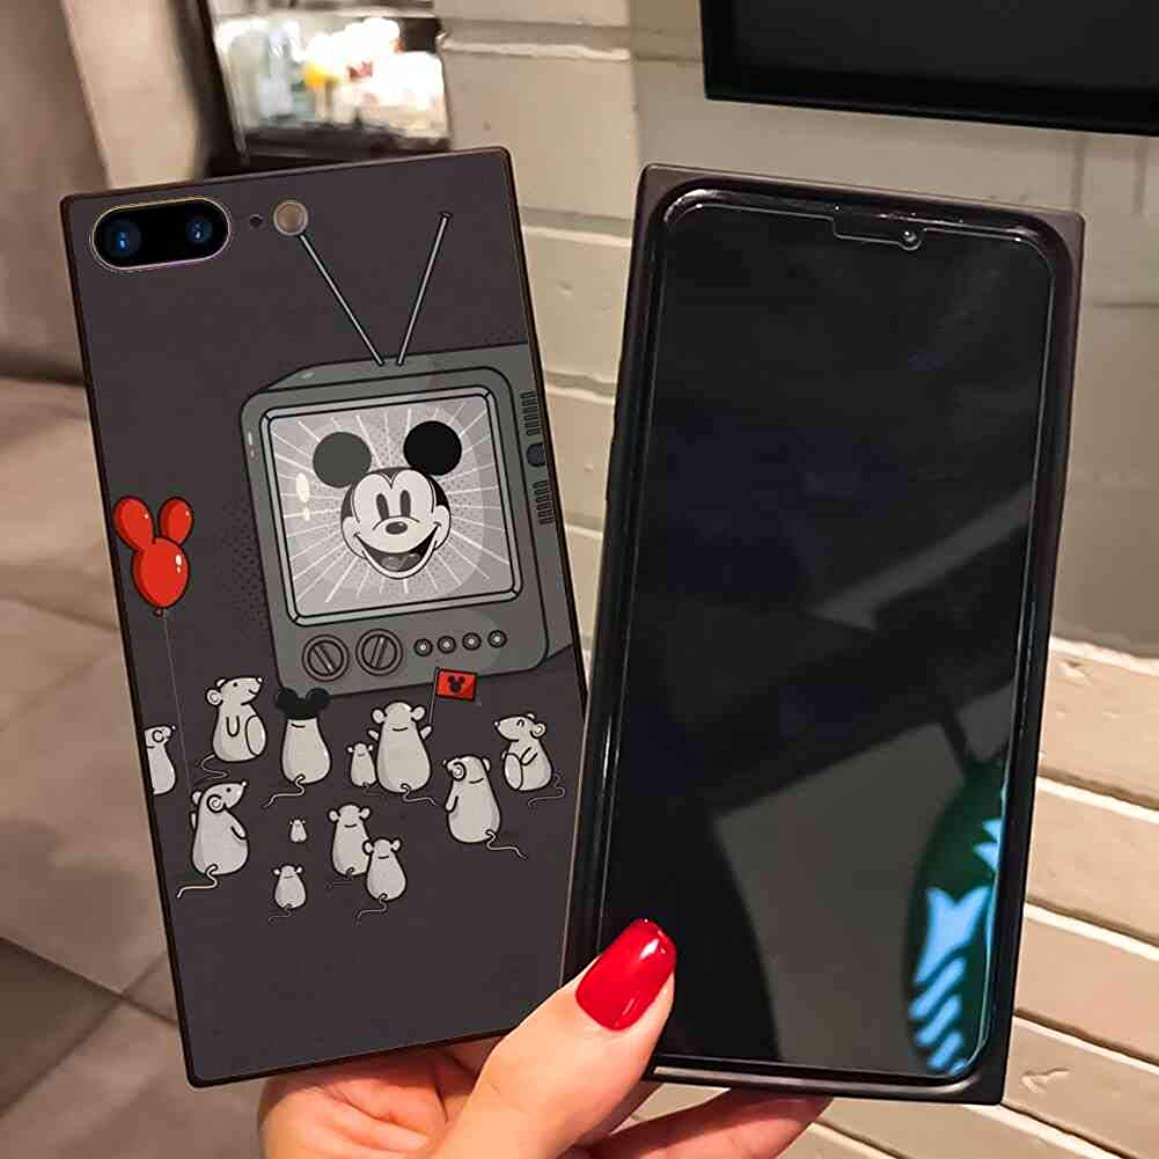 DISNEY COLLECTION Fits for Apple iPhone 7 Plus and iPhone 8 Plus 5.5-Inch The mice are Watching Mickey Mouse on TV